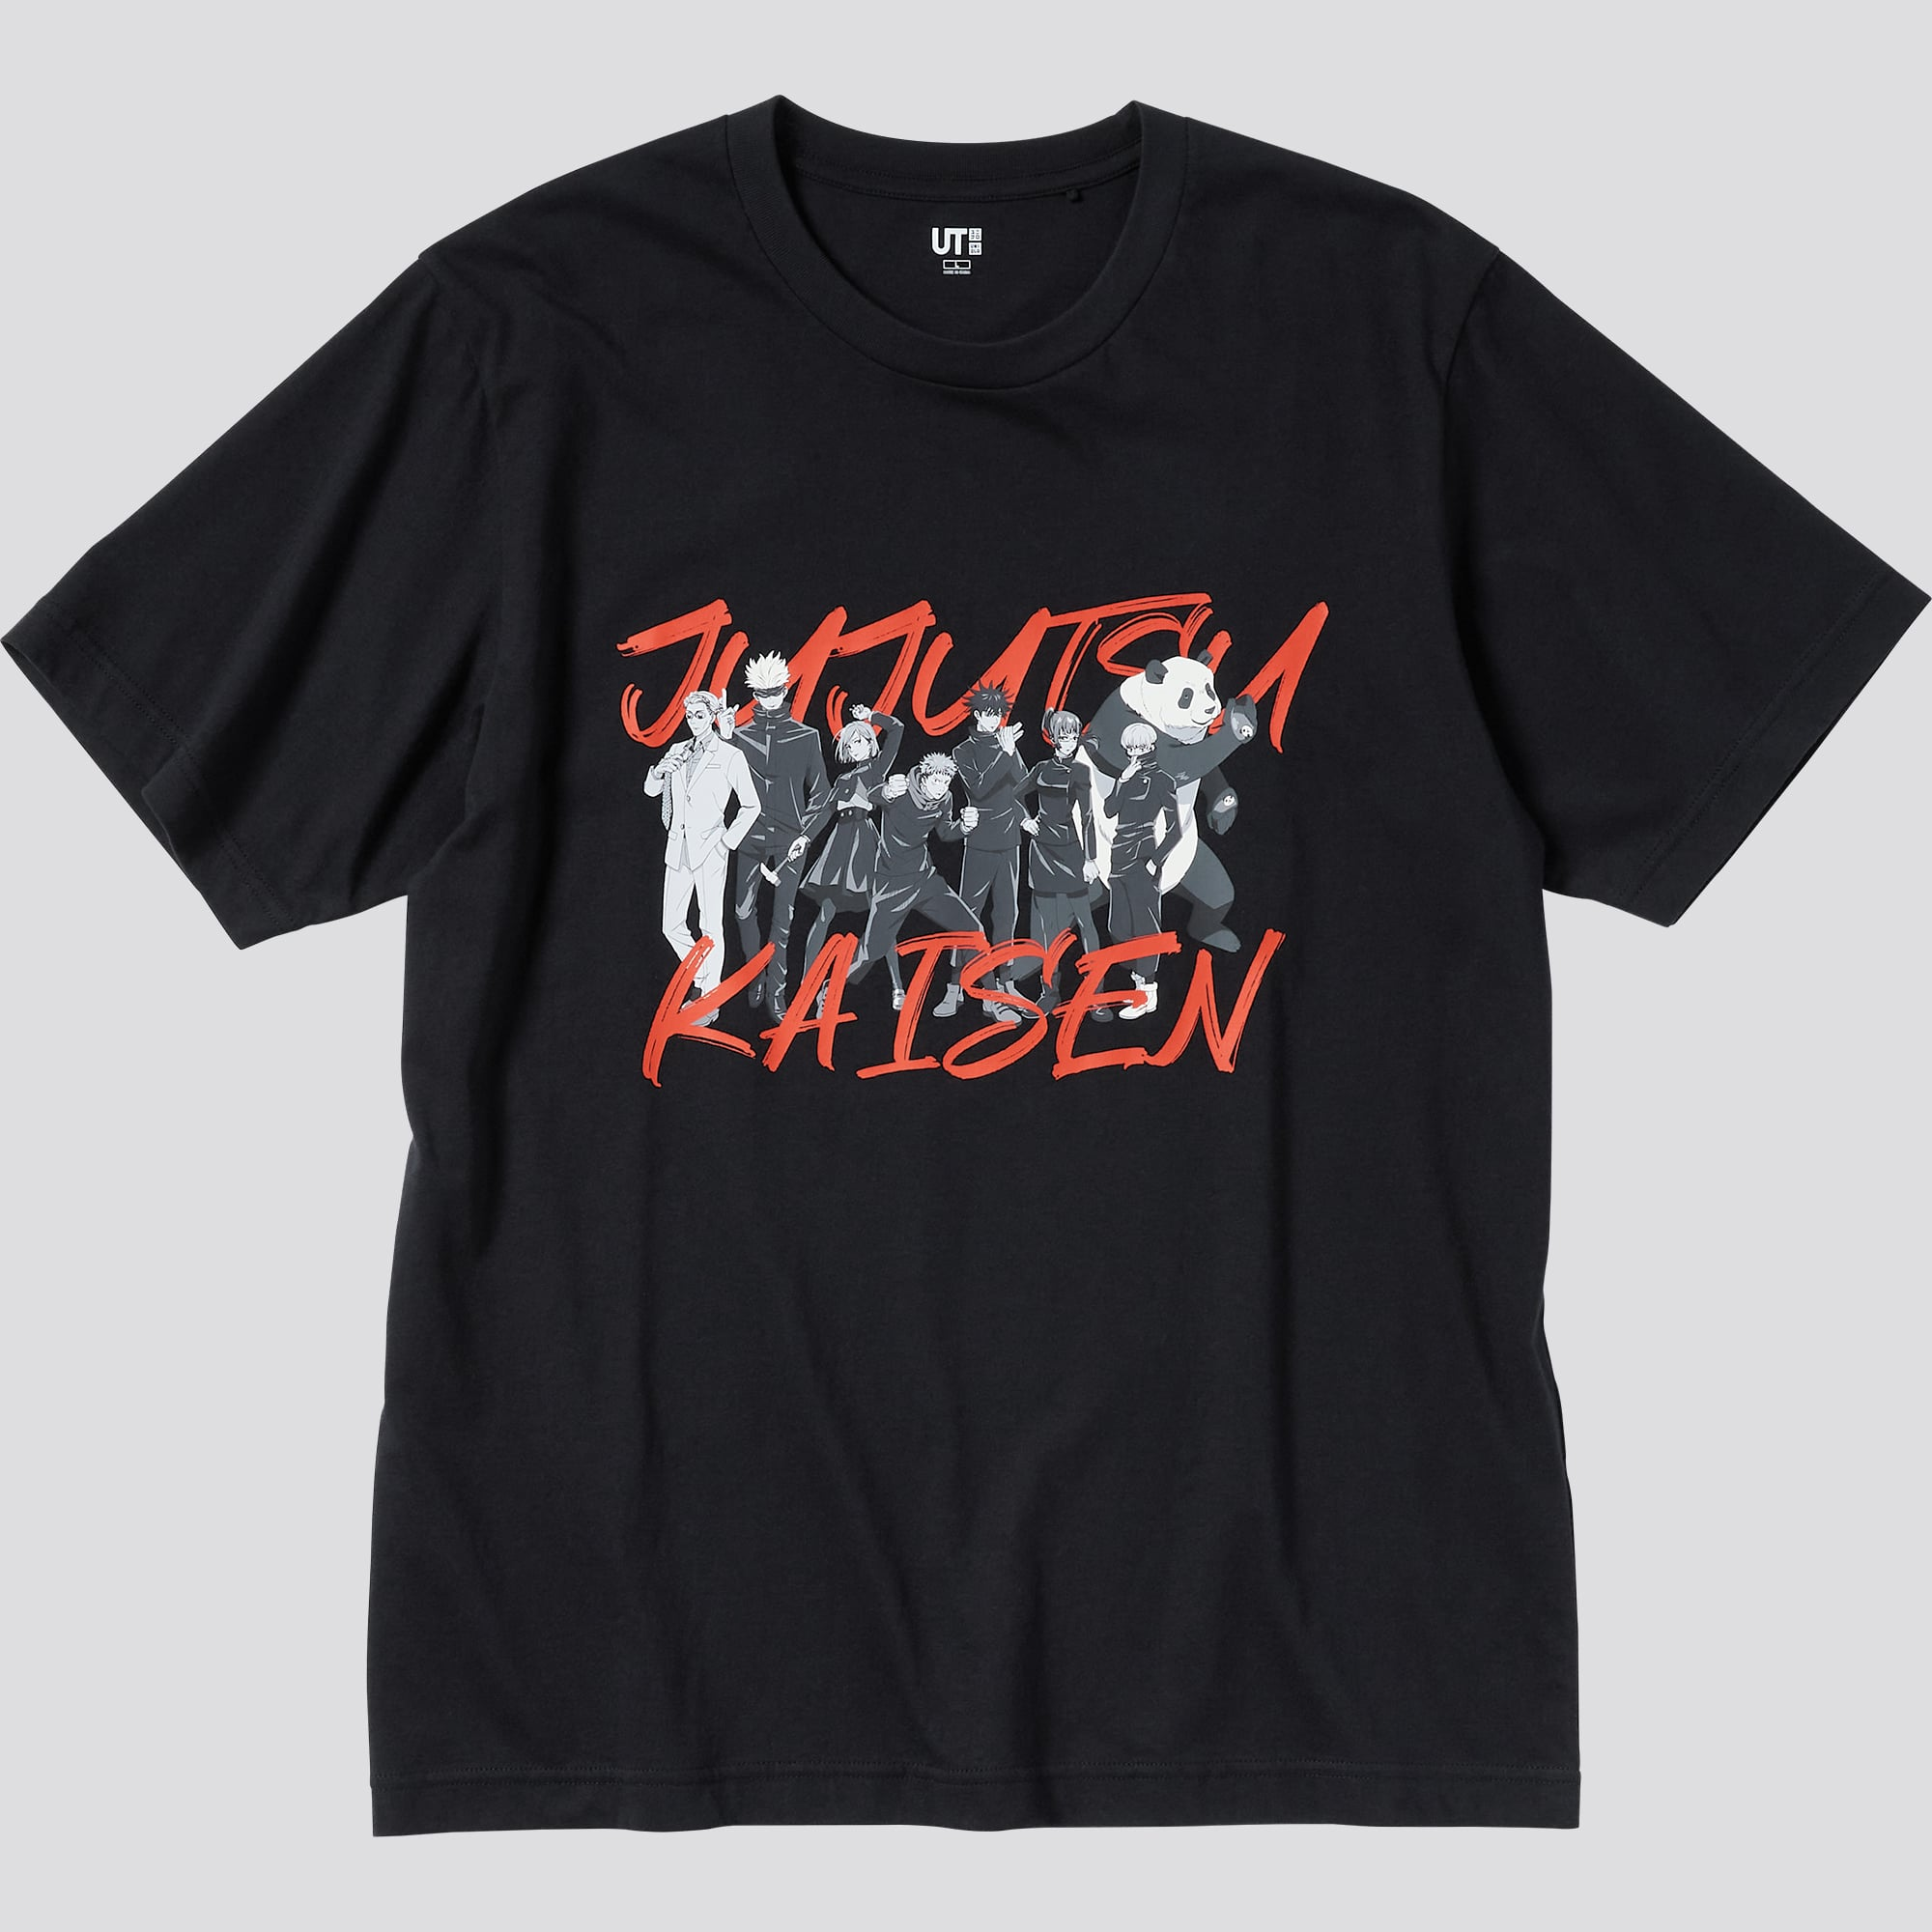 UNIQLO's second Jujutsu Kaisen UT collection is launching in late June 16